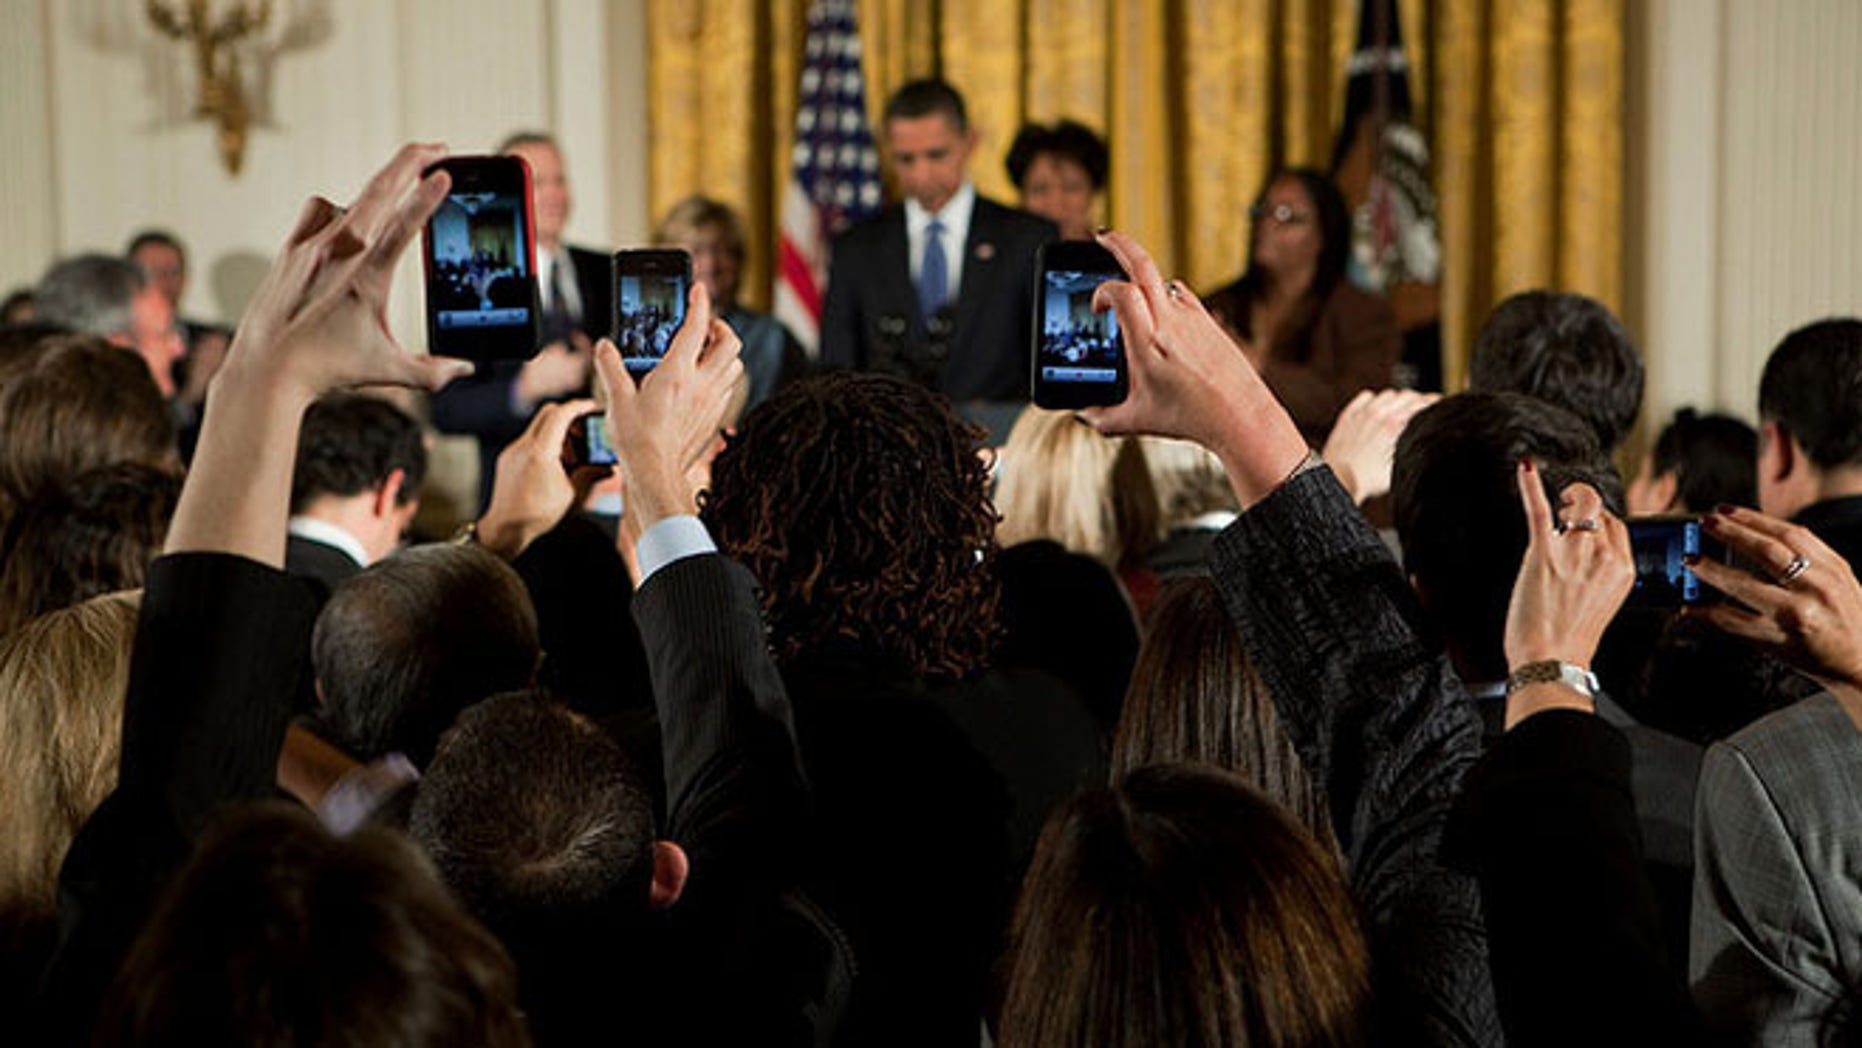 Oct. 28, 2009: Shown here is President Obama and guests at a reception commemorating the enactment of expanded federal hate crimes legislation.